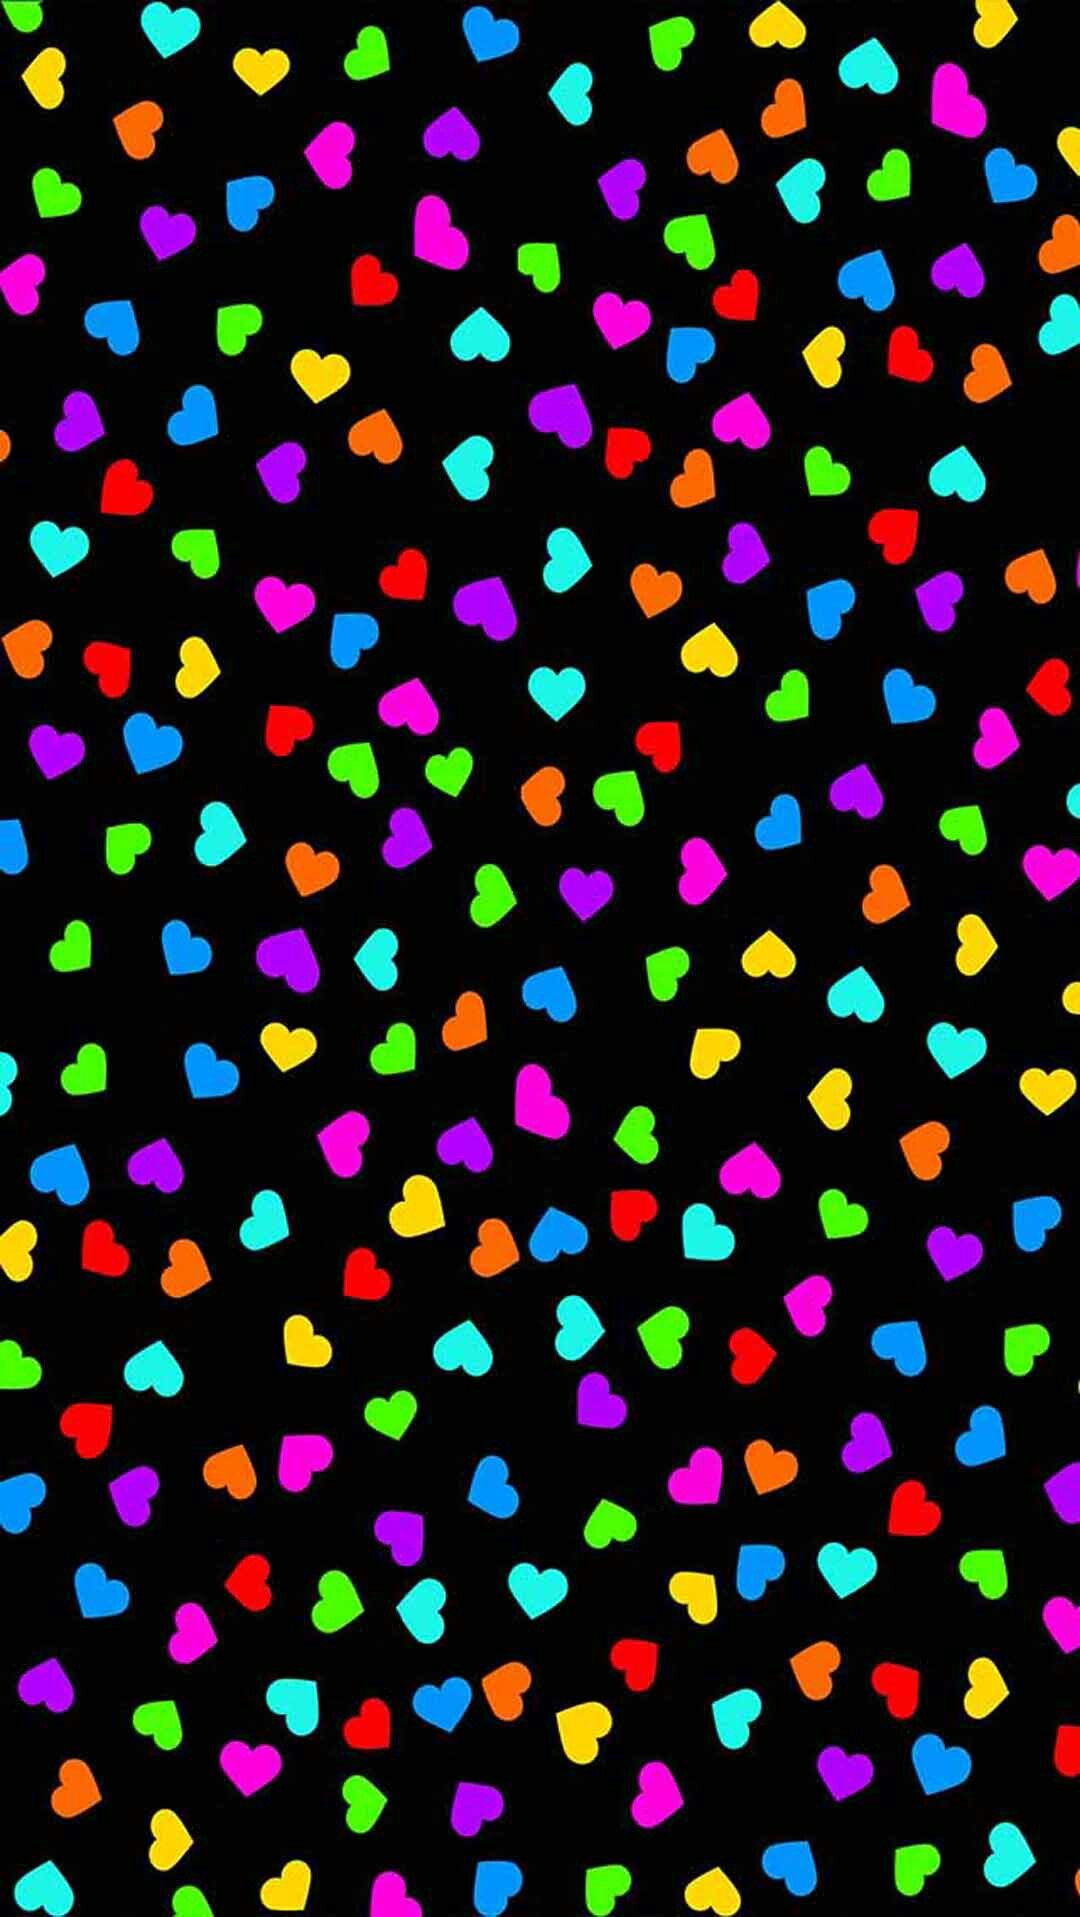 Pin By Lacey Hooton On More Wallz Heart Wallpaper Colorful Heart Beautiful Wallpaper For Phone